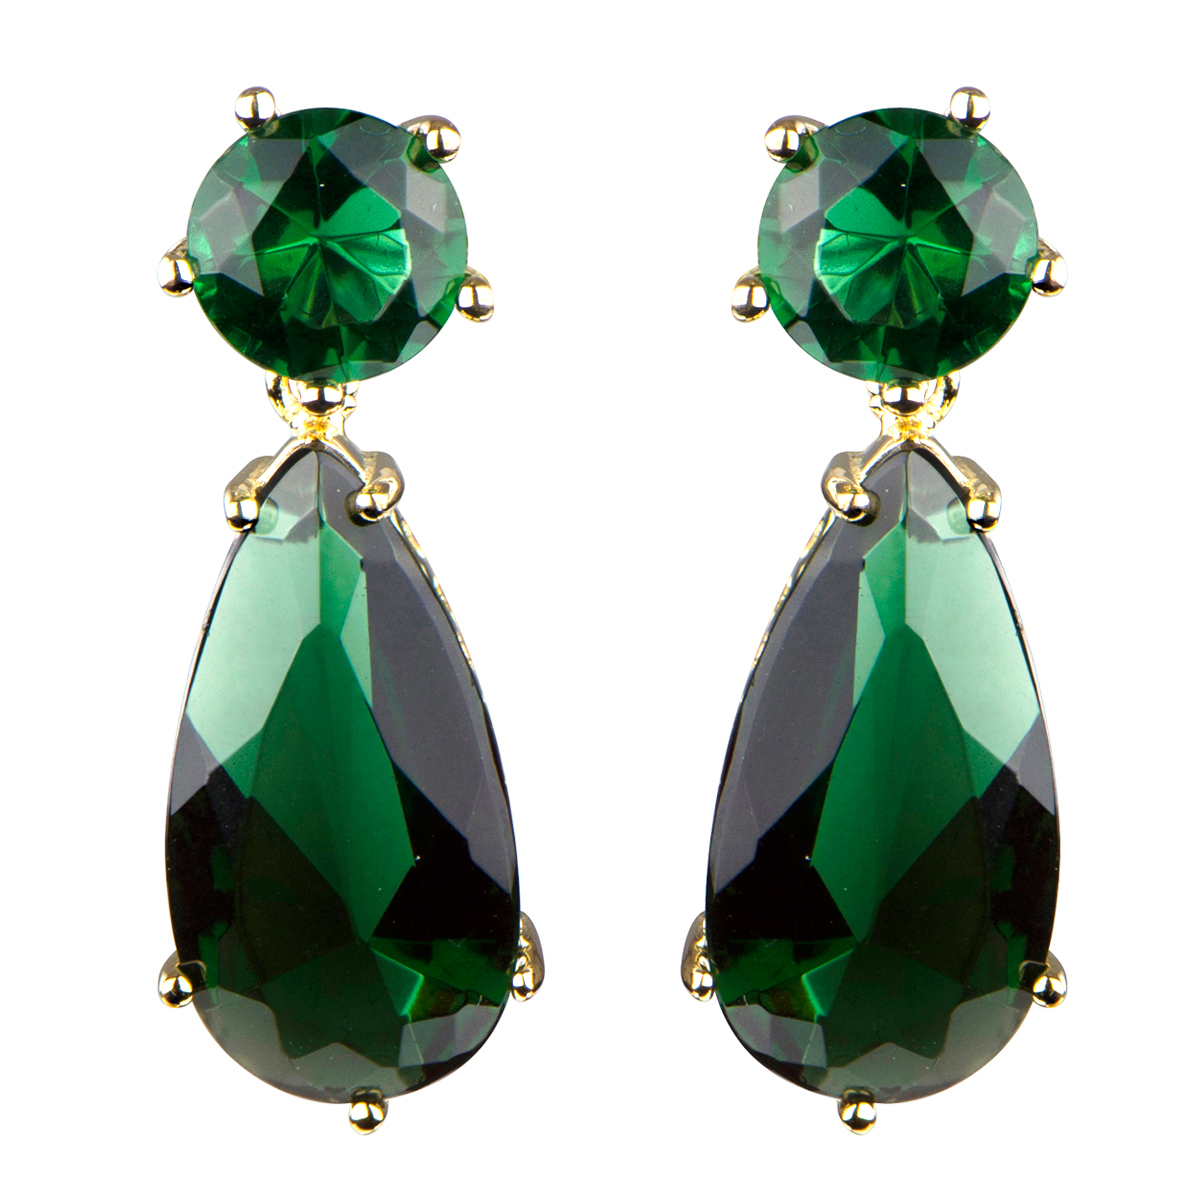 green earrings roll off image to close zoom window zwffcpr